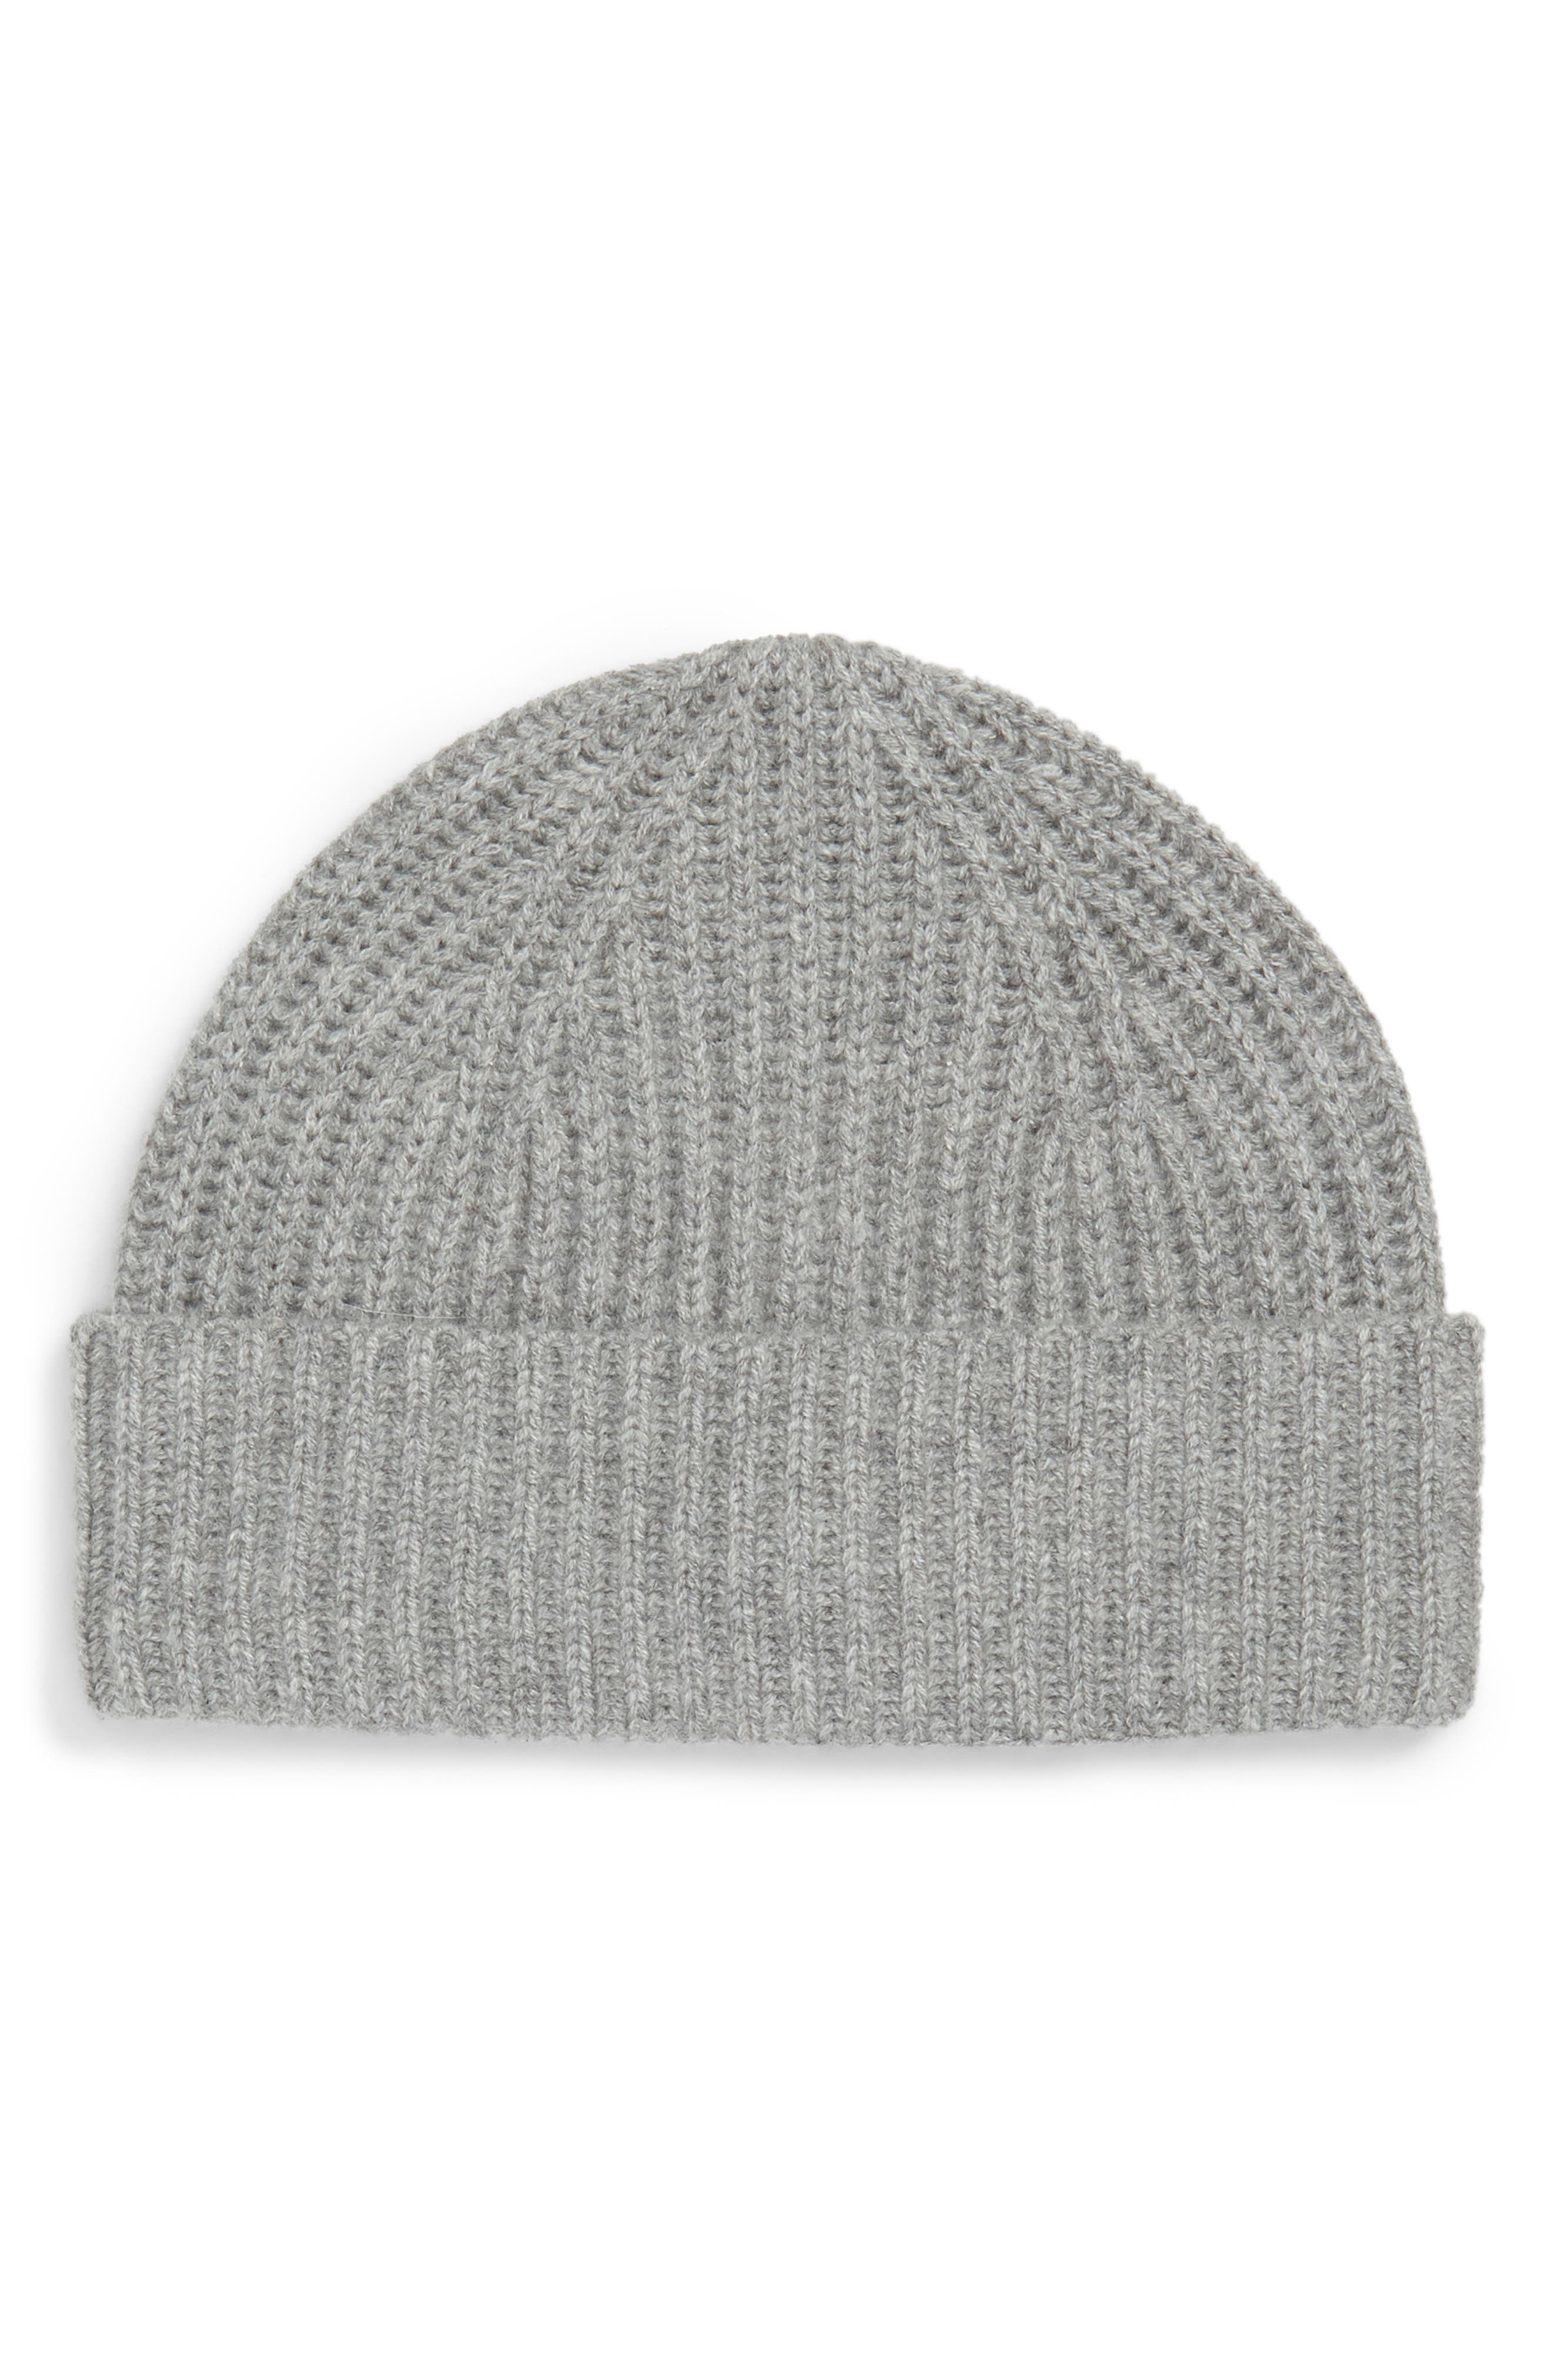 Cashmere Knit Cap,                             Main thumbnail 1, color,                             LIGHT GREY HEATHER